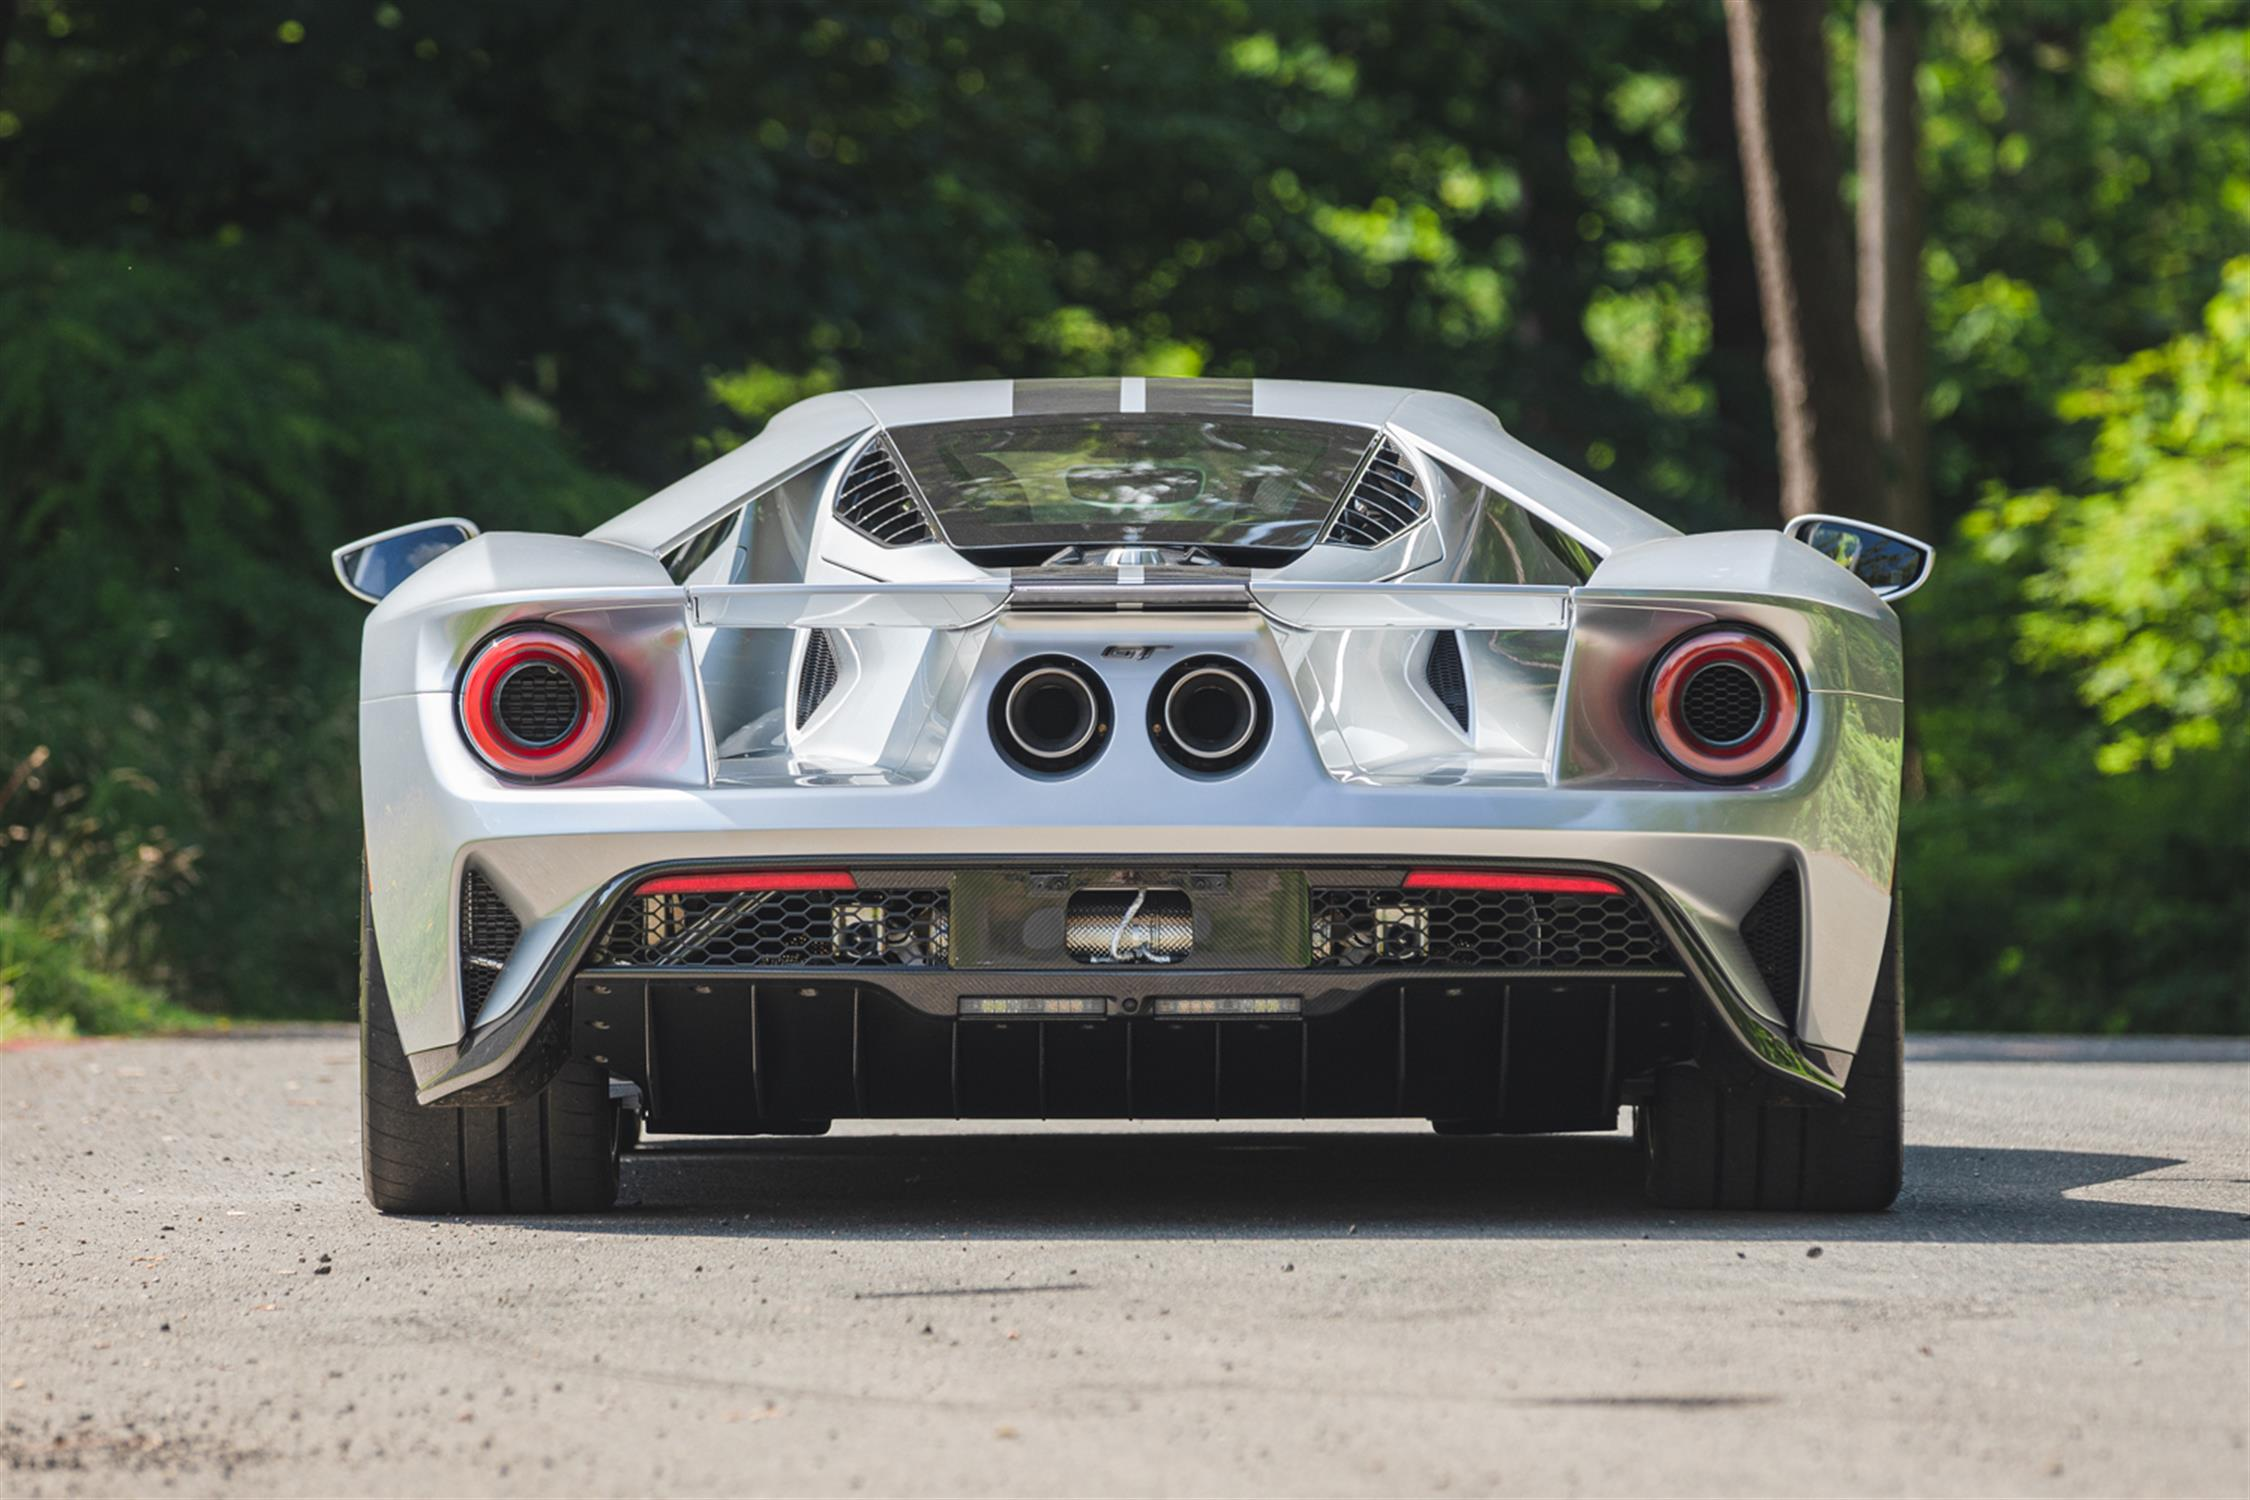 2018 Ford GT - Image 13 of 20